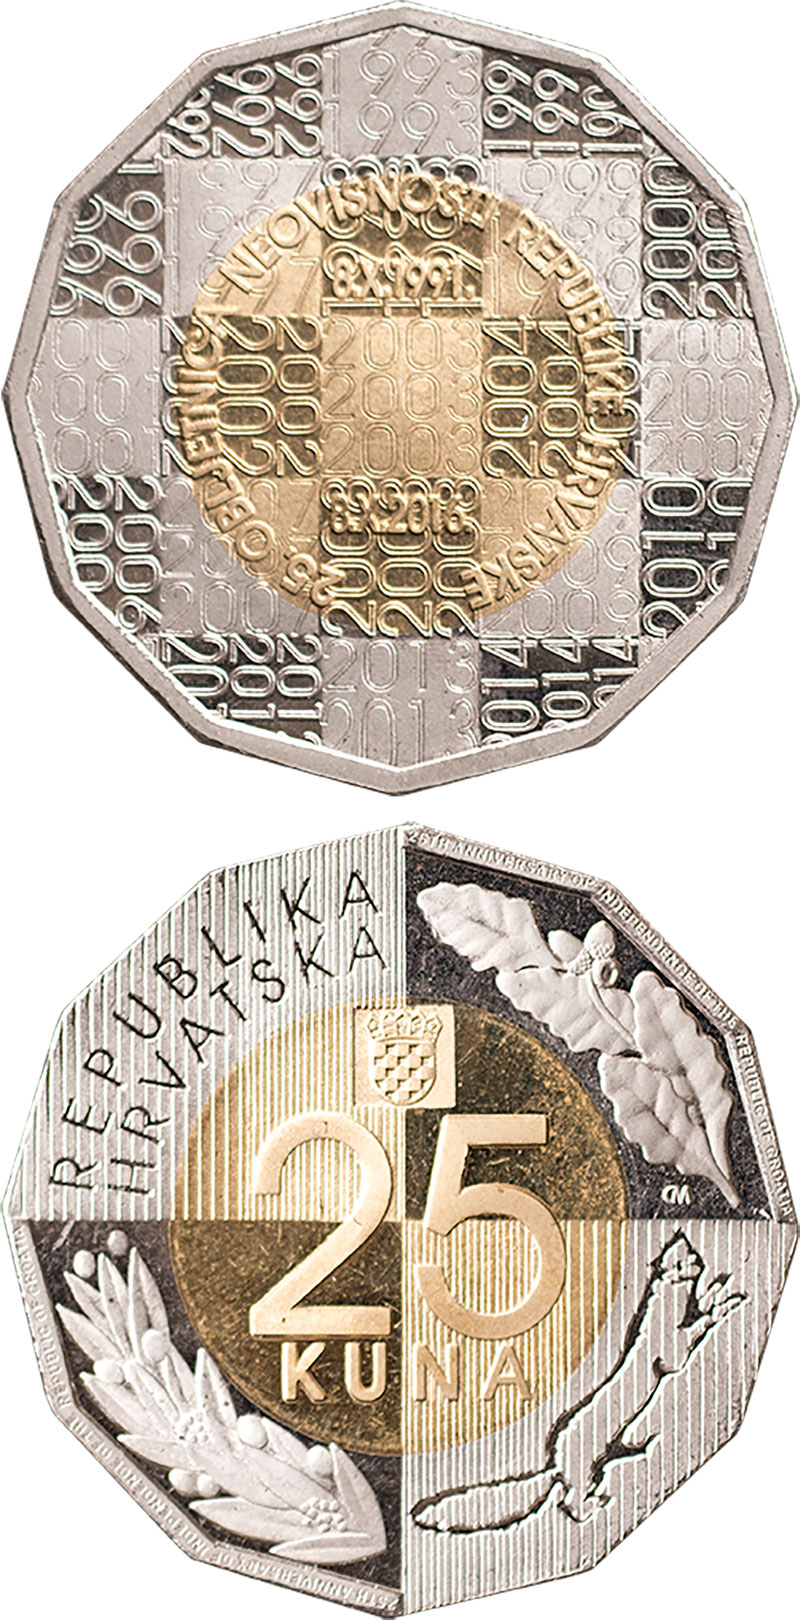 25 kuna | Croatia | 25th Anniversary of Independence of the Republic of Croatia | 2016